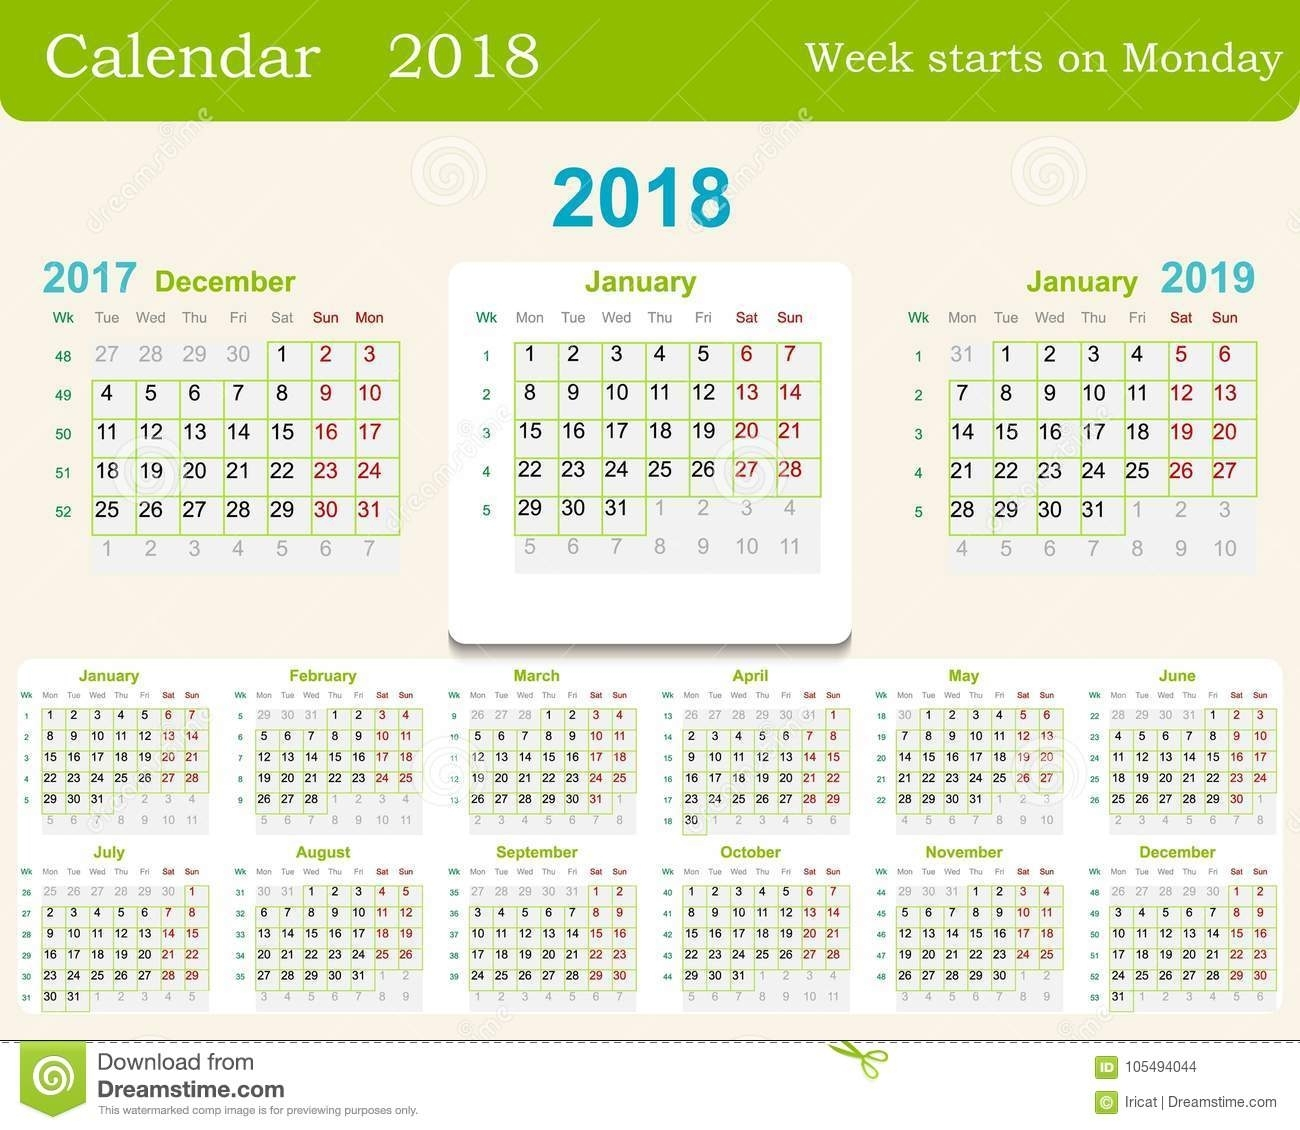 Calendar Grid For 2018 Week Starts From Monday And From